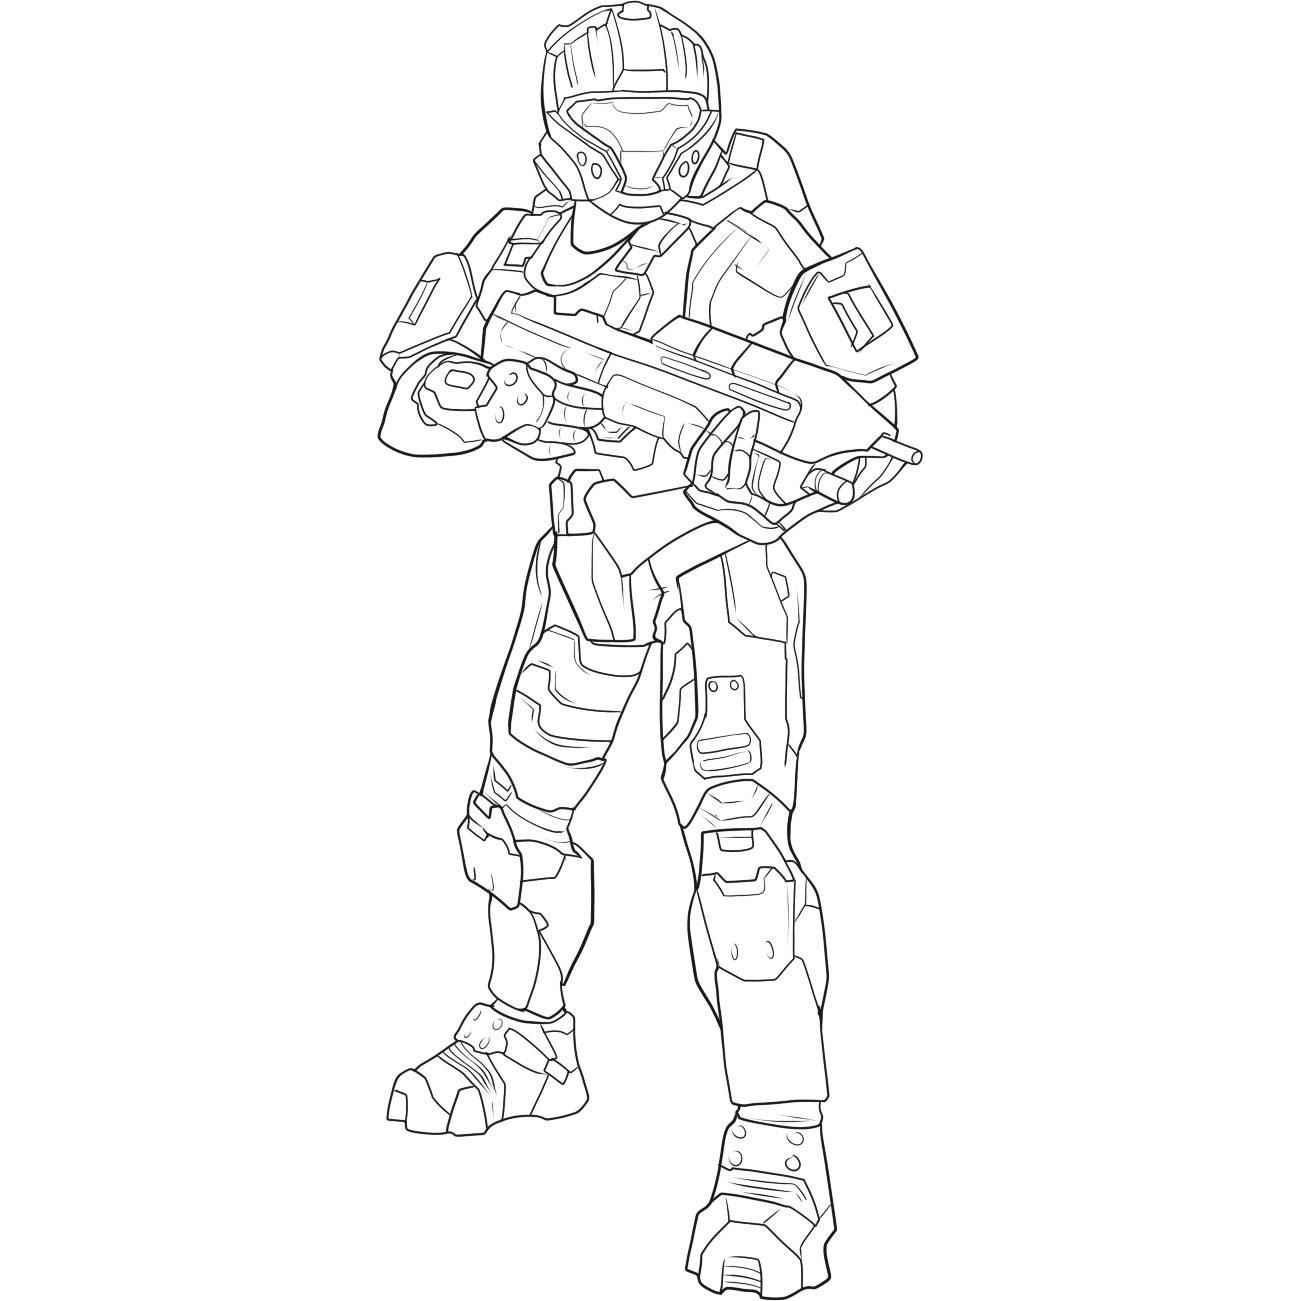 Halo 4 Master Chief Drawing At Getdrawings